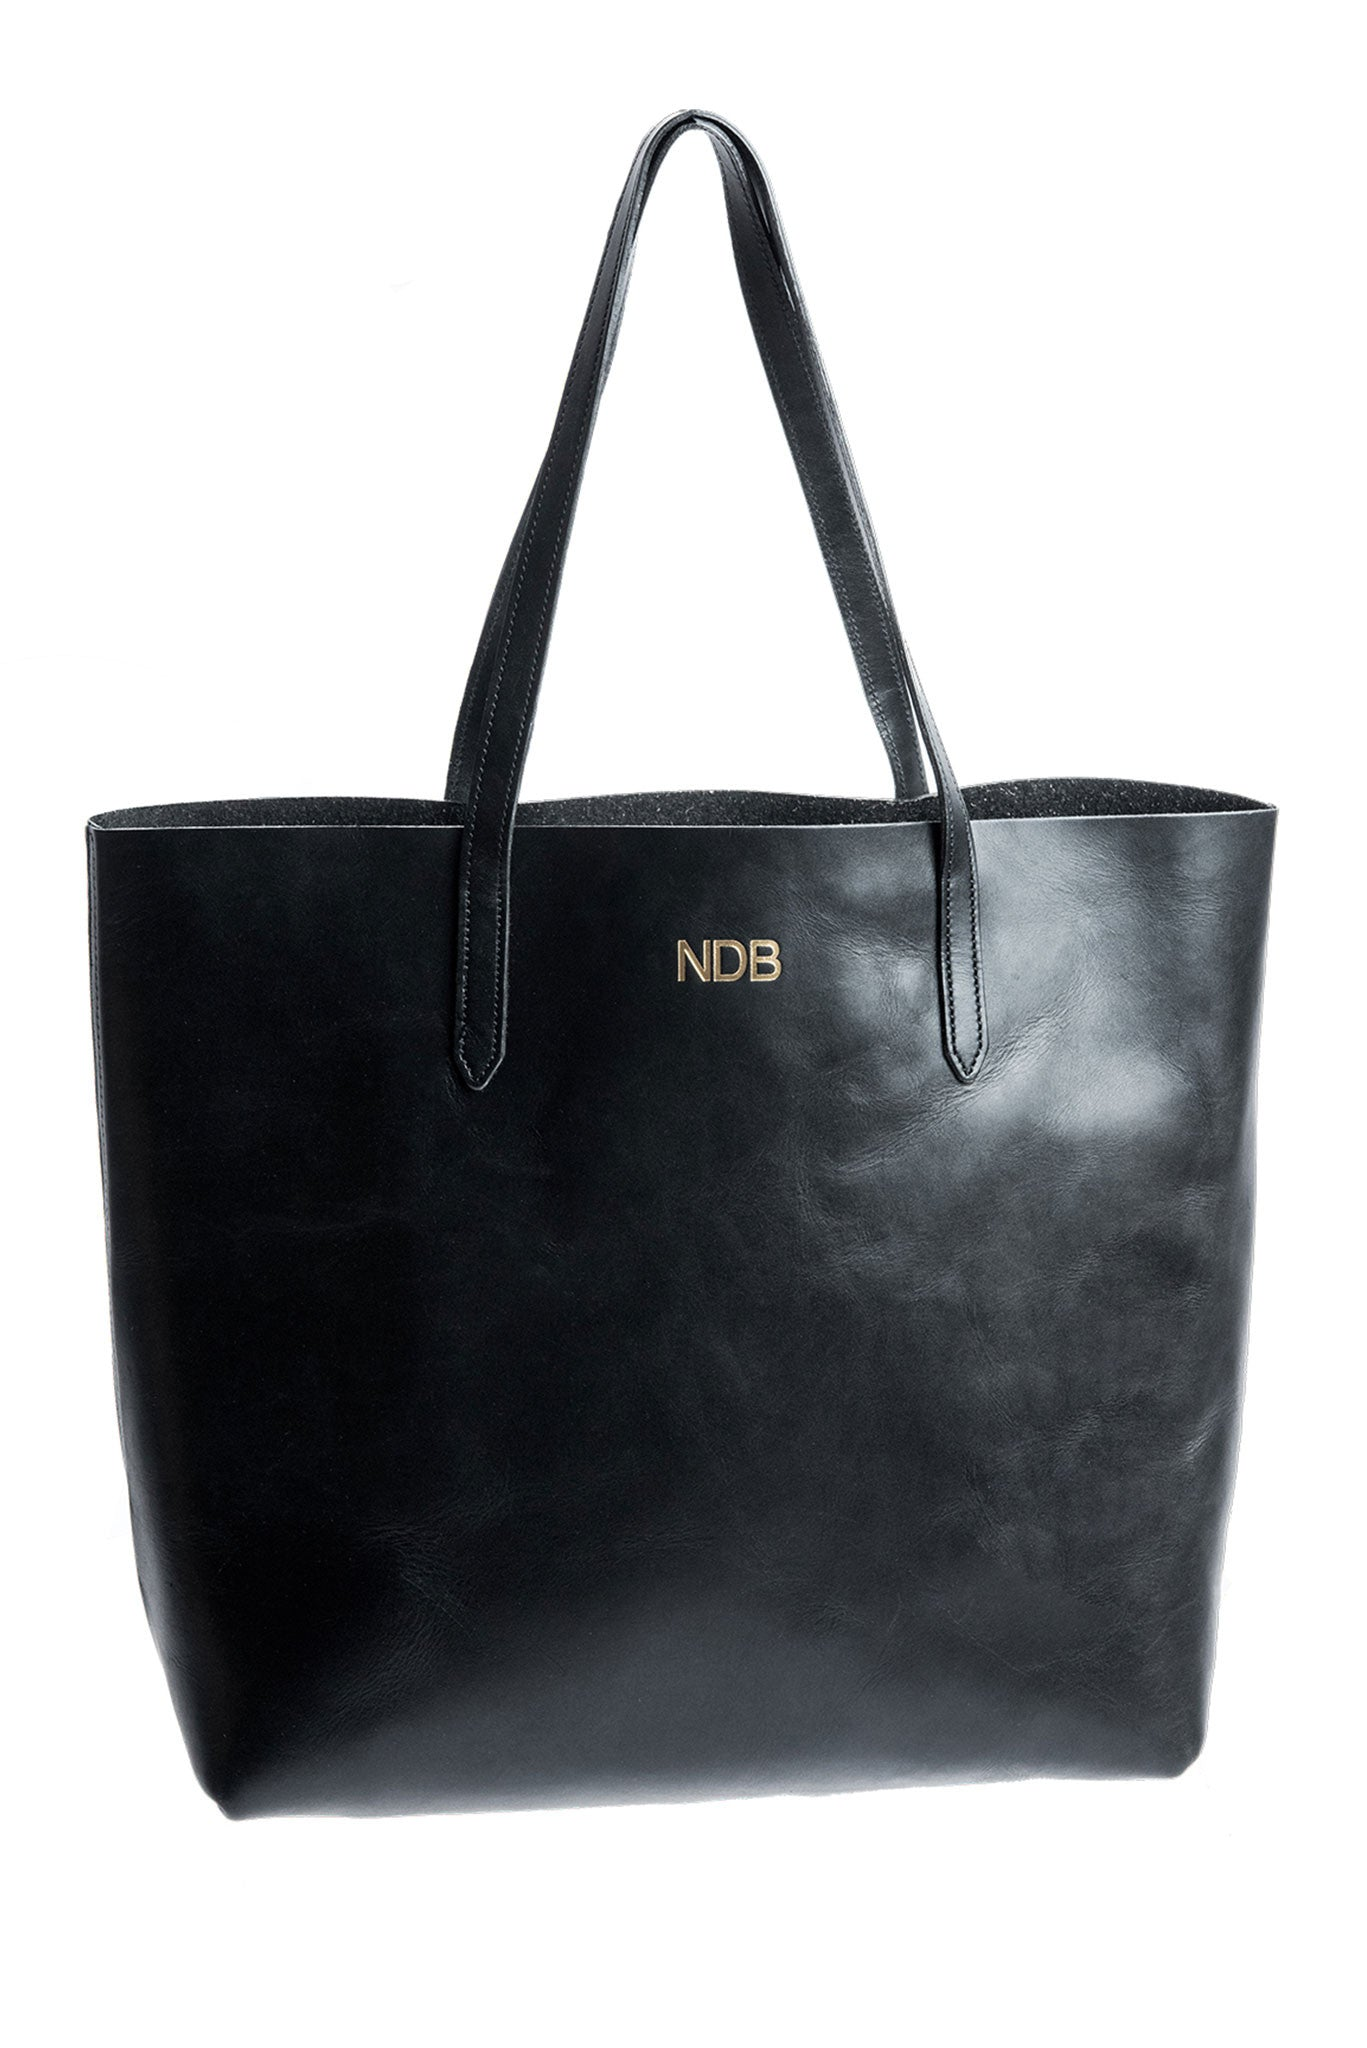 FOTO | The Highland Leather Tote - Black - a genuine leather tote in black vegetable tanned leather can be personalized with gold foil initials, making it the perfect personalized gift.